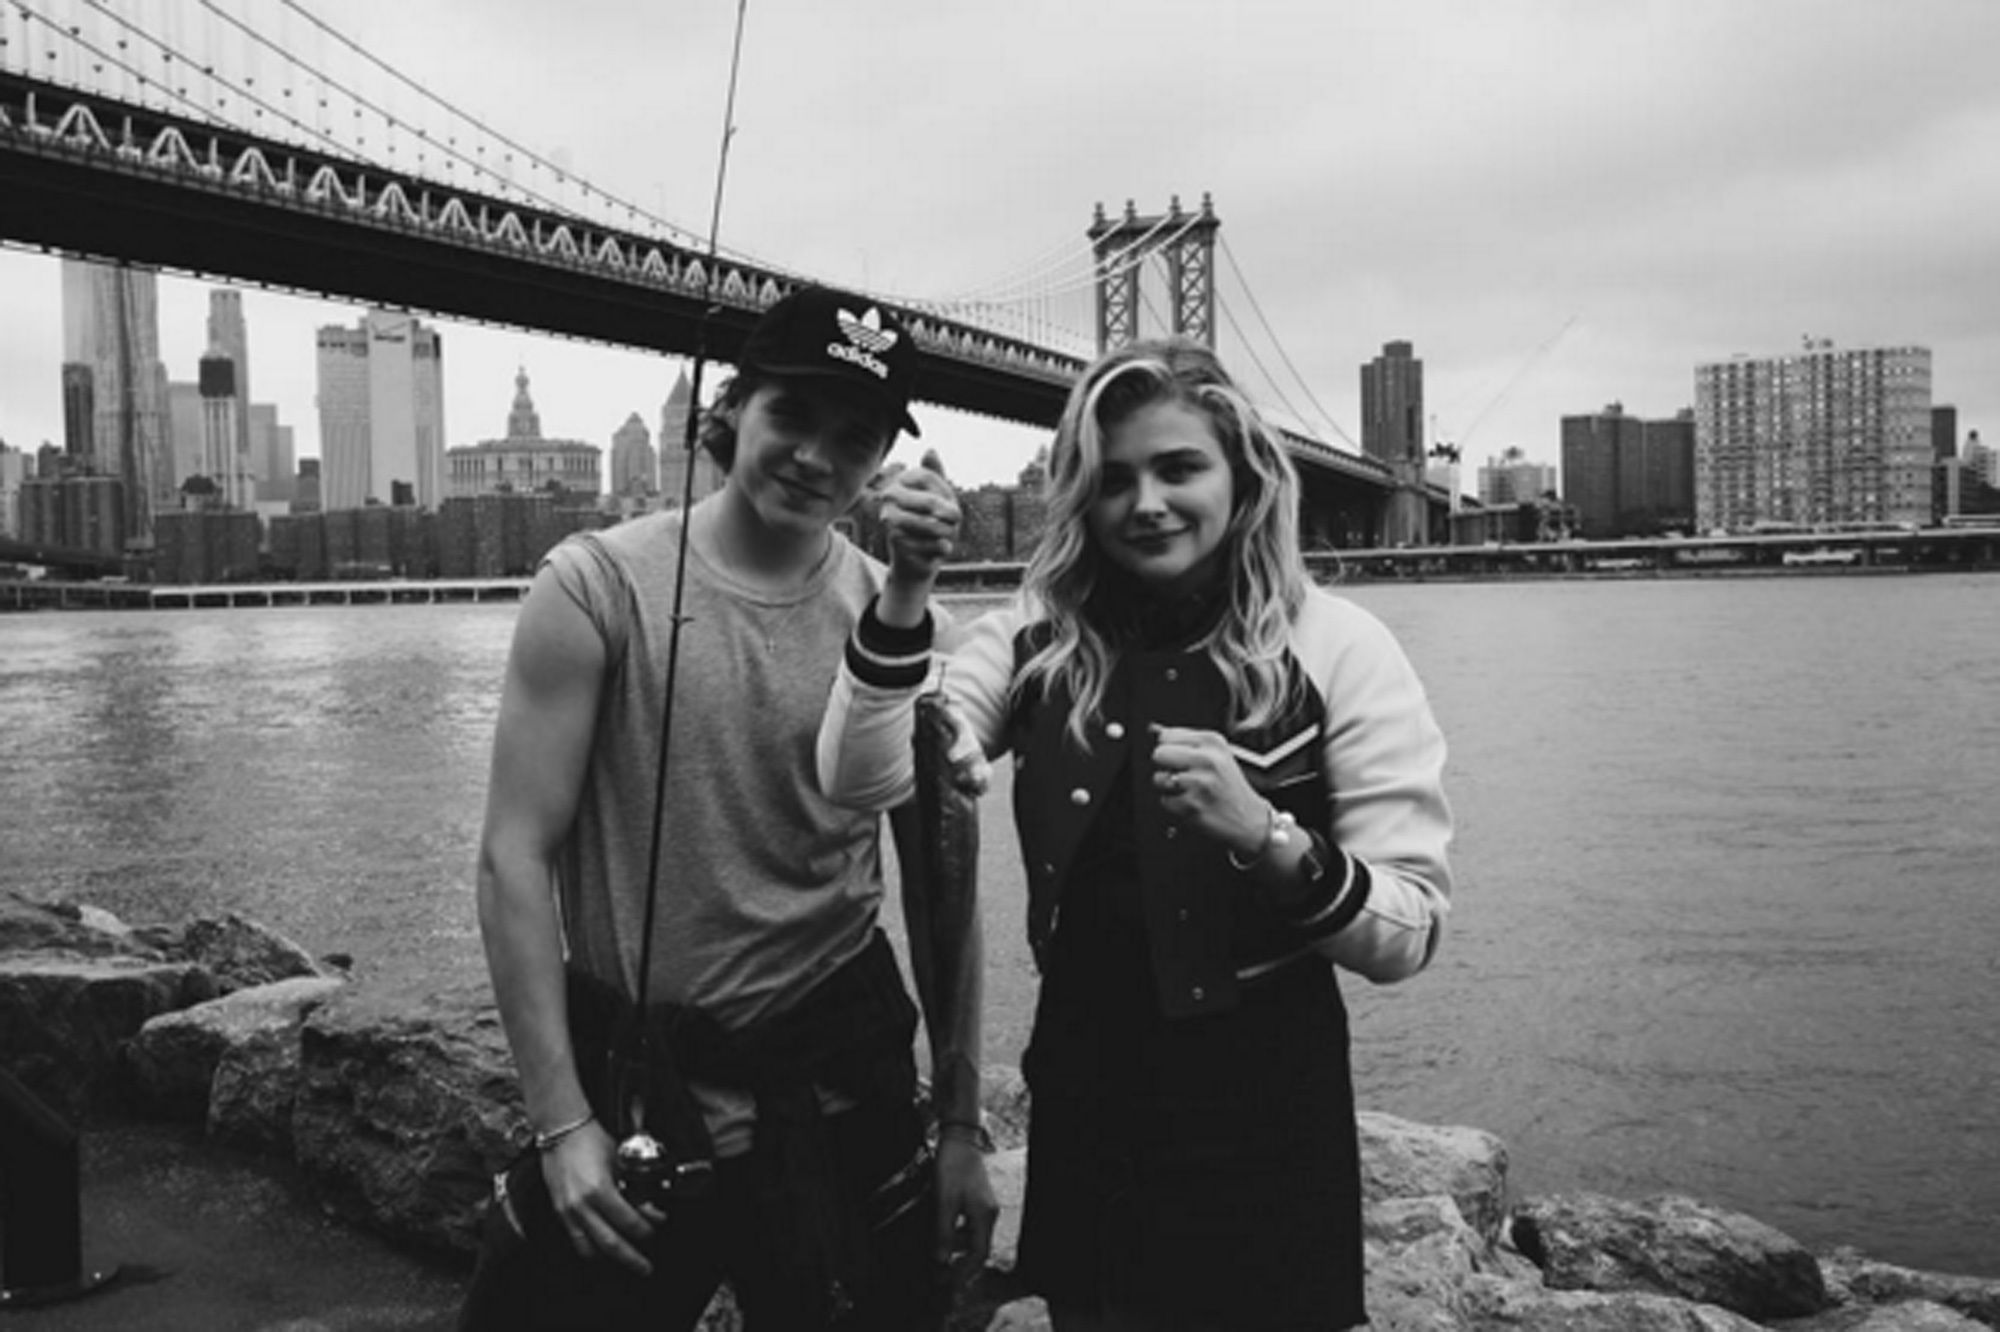 Brooklyn Beckham and Chloë Grace Moretz are not only back together, but they are also Instagram official again! (Photo: Instagram)